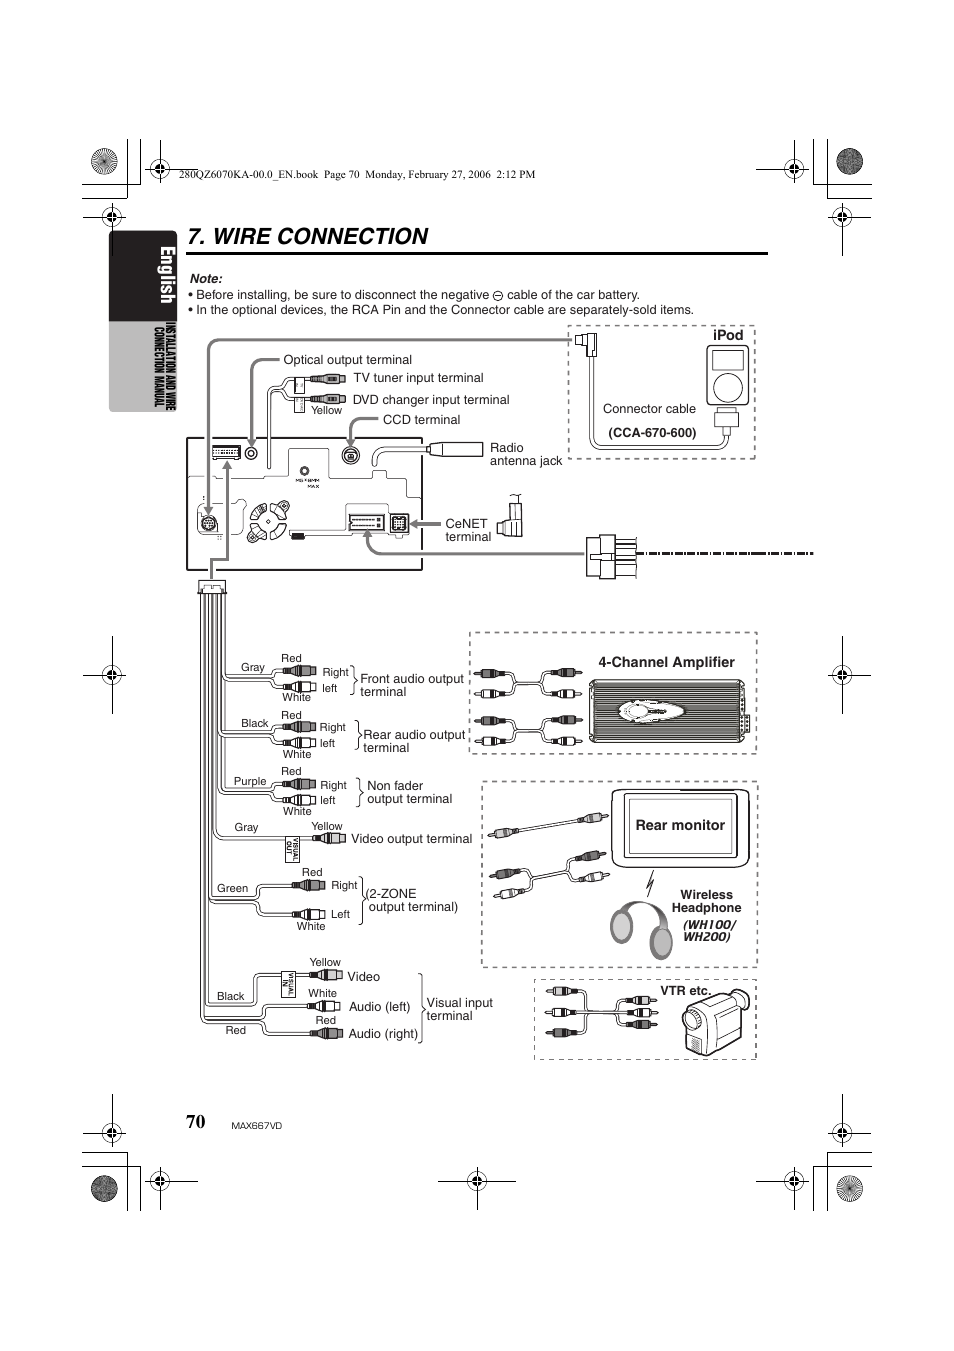 Wire Connection English Clarion Max667vd User Manual Page 70 75 16 Pin Wiring Diagram